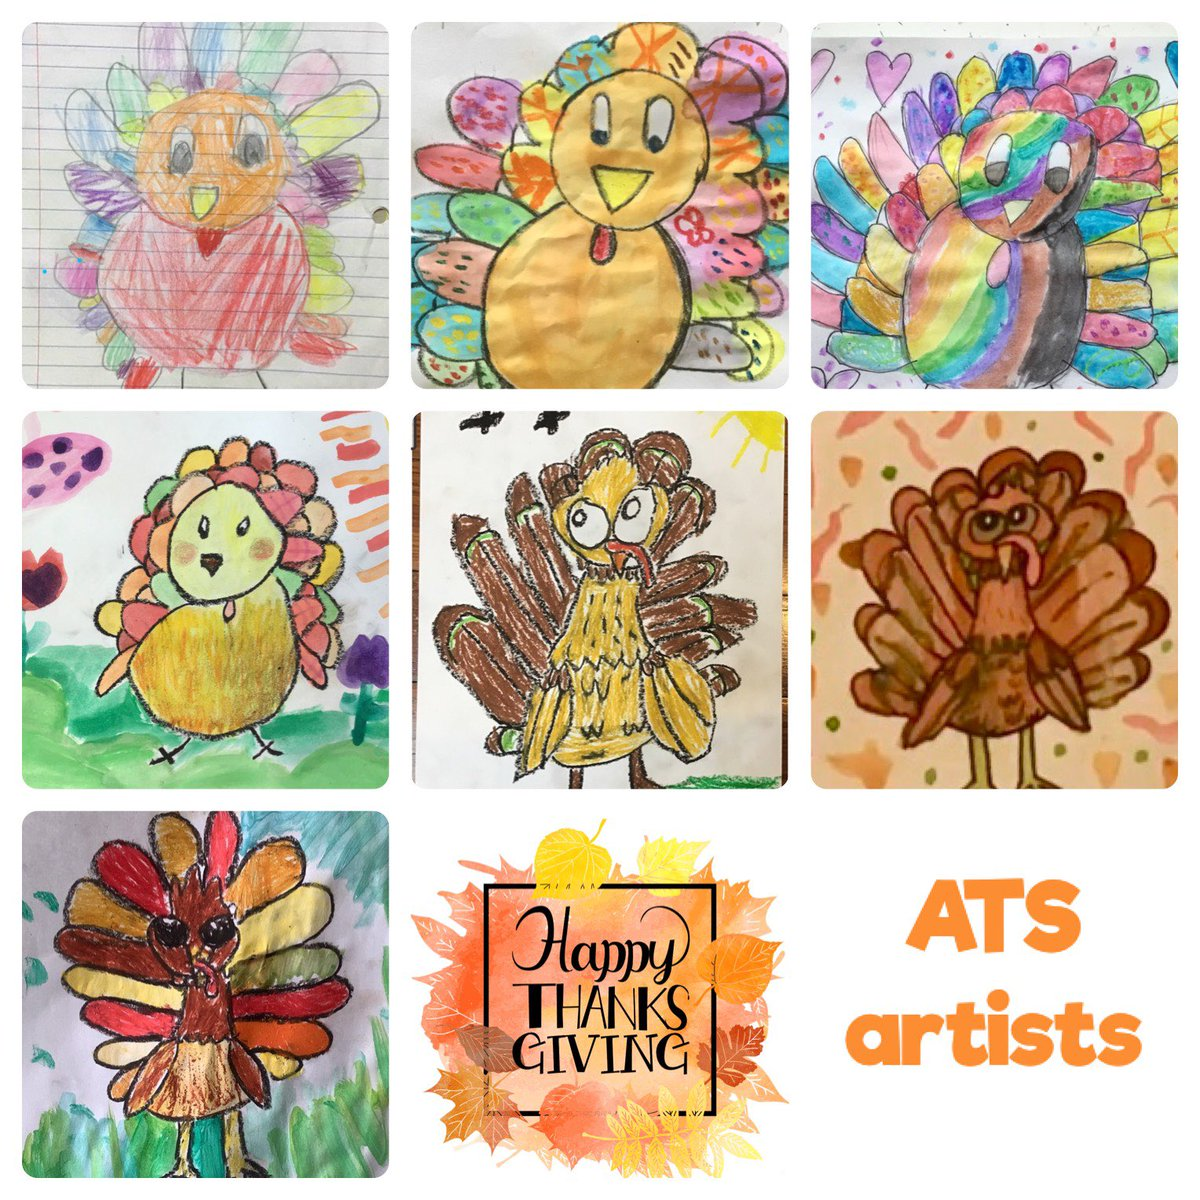 I'm thankful for my talented students.  Happy Thanksgiving! <a target='_blank' href='http://twitter.com/APSArts'>@APSArts</a> <a target='_blank' href='http://twitter.com/APS_ATS'>@APS_ATS</a> <a target='_blank' href='http://twitter.com/perezartlove'>@perezartlove</a>  <a target='_blank' href='http://search.twitter.com/search?q=APSartsthrive'><a target='_blank' href='https://twitter.com/hashtag/APSartsthrive?src=hash'>#APSartsthrive</a></a> <a target='_blank' href='https://t.co/HwRLUn2obt'>https://t.co/HwRLUn2obt</a>